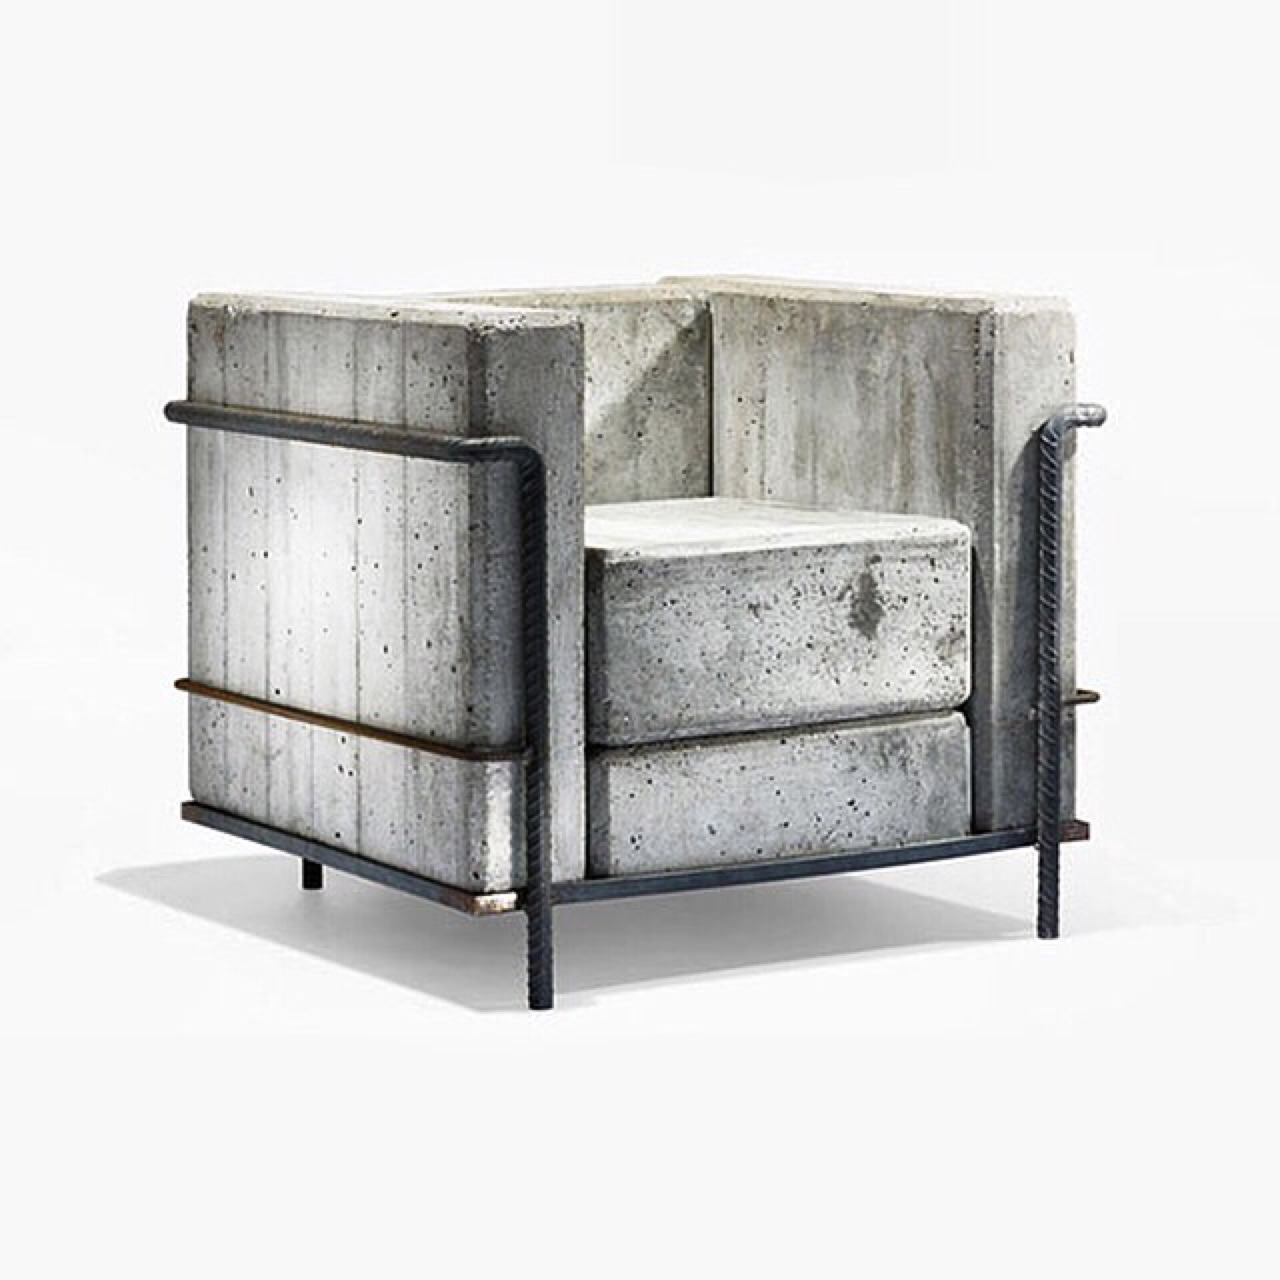 Armchair On Youtube Bauhaus Movement Magazine A Concrete Version Of A